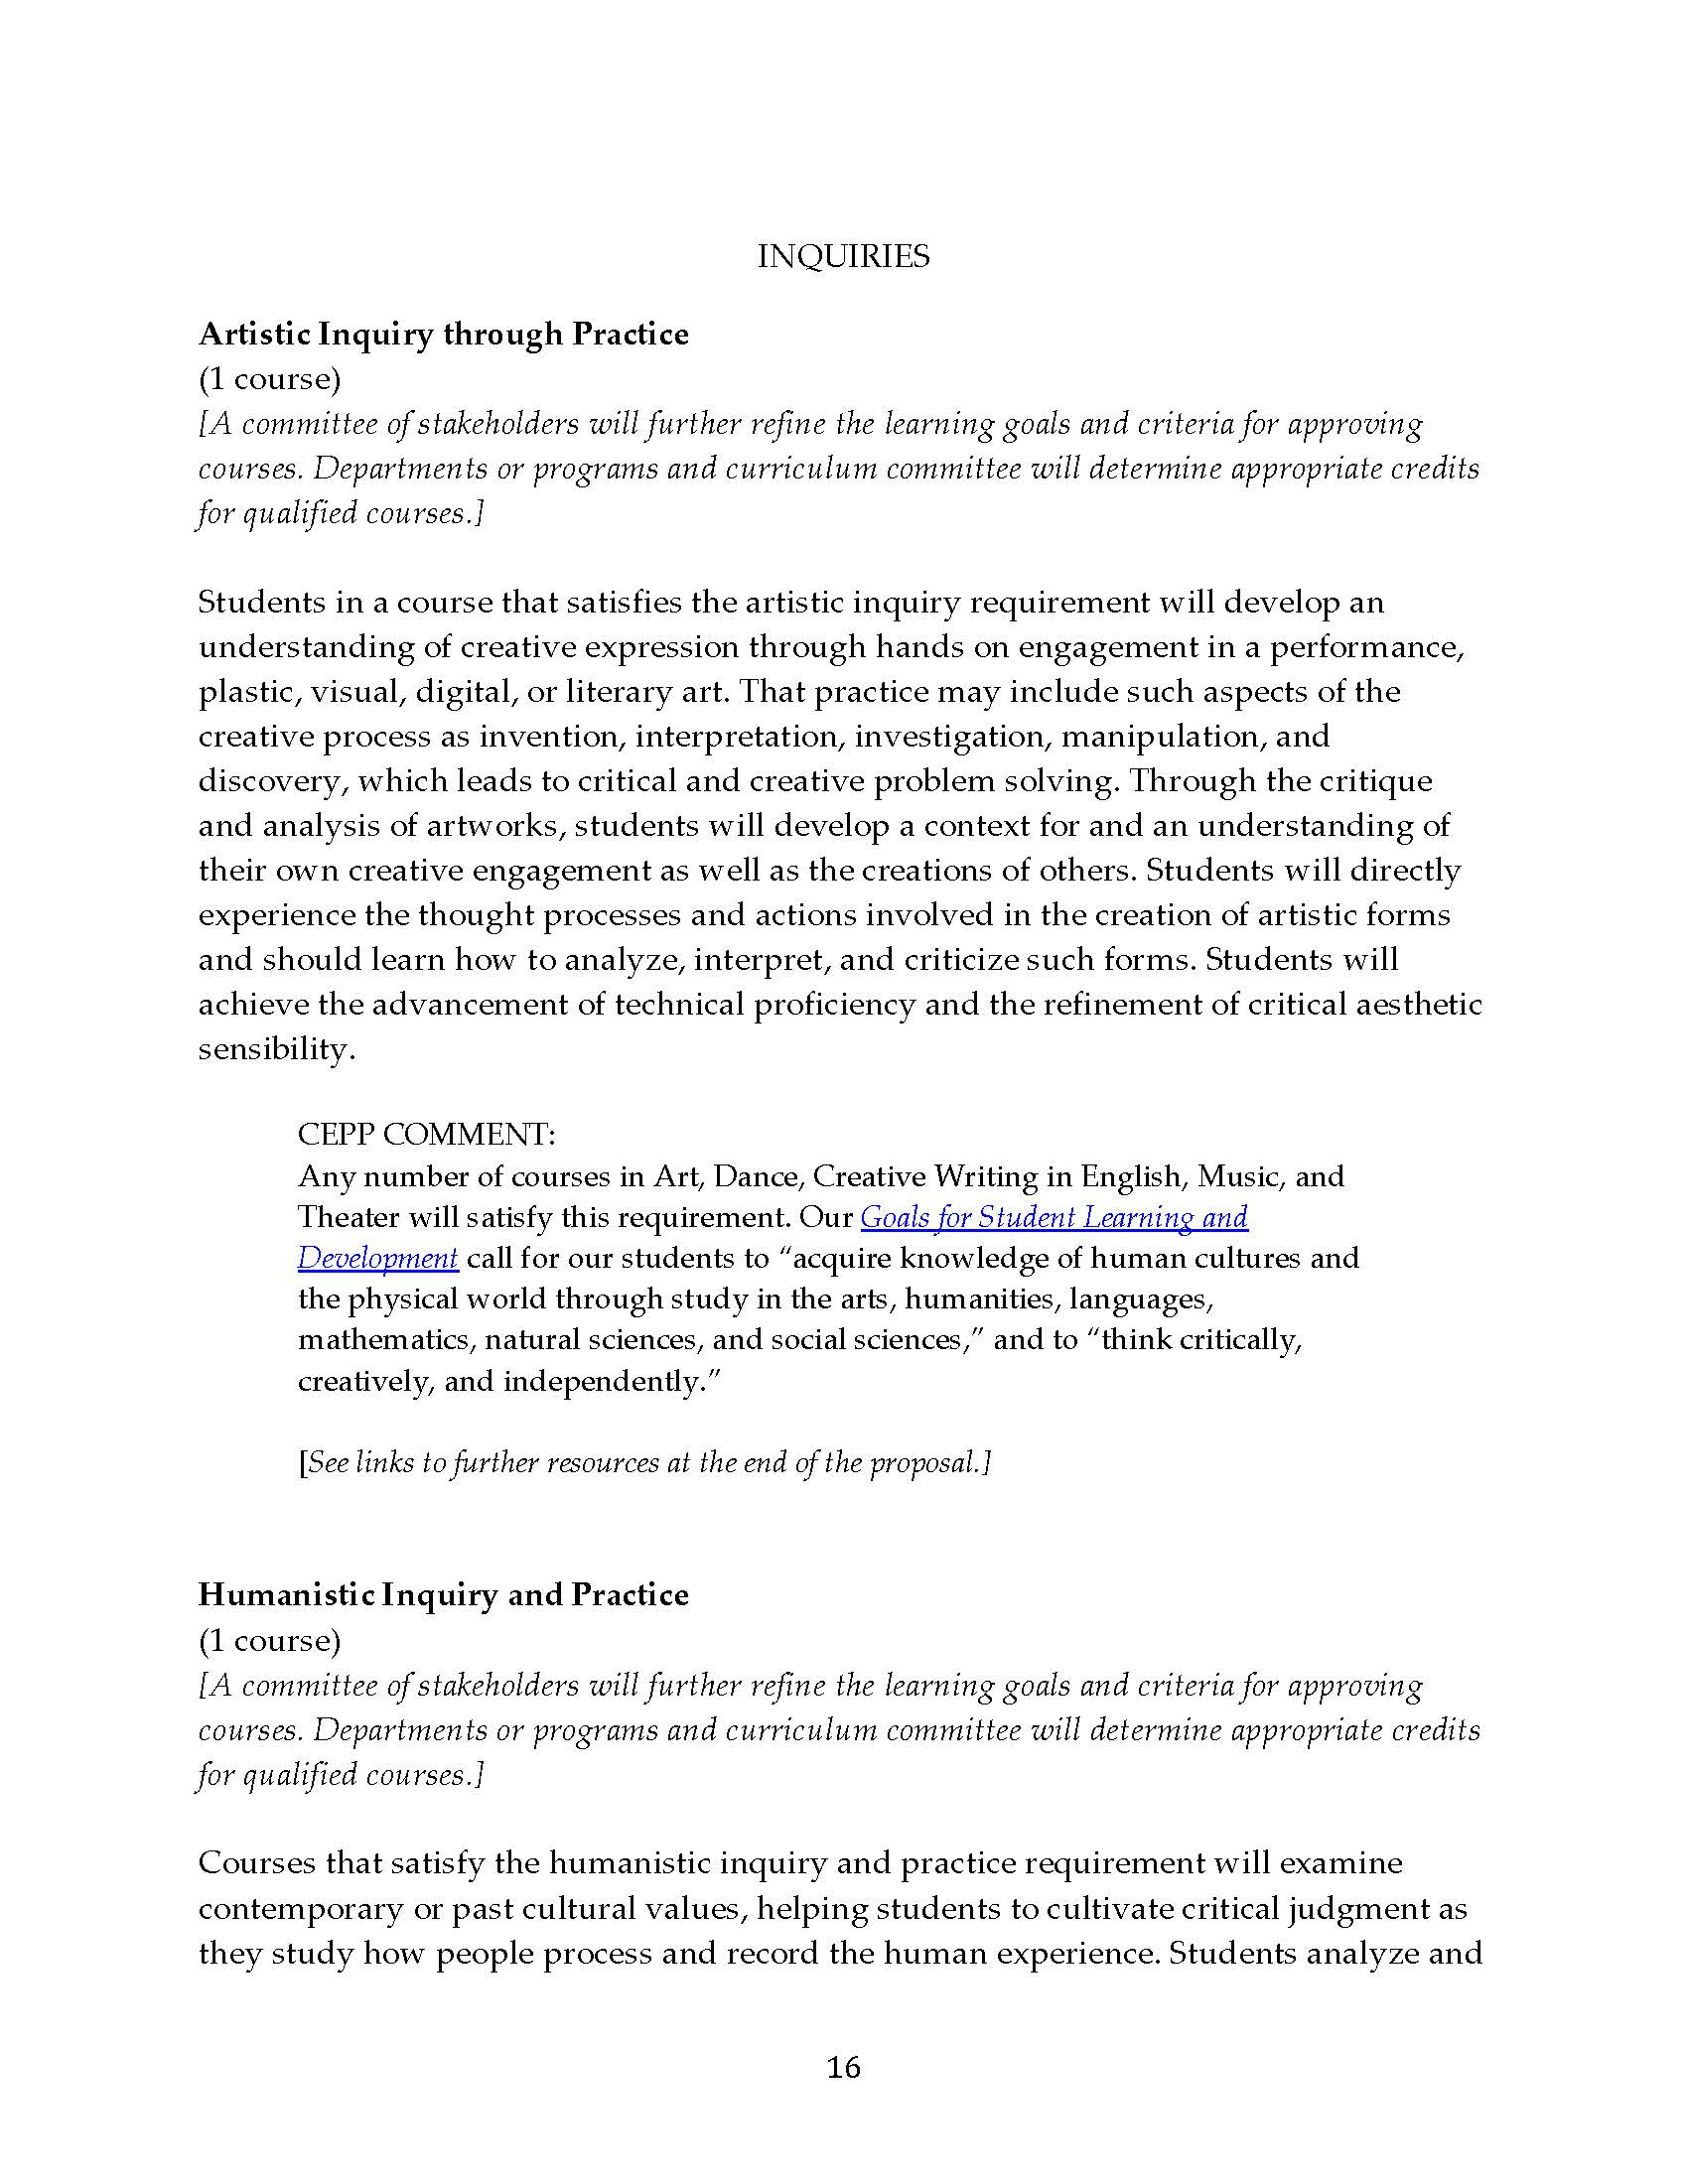 General Education Proposal February 28 2017_Page_16.jpg